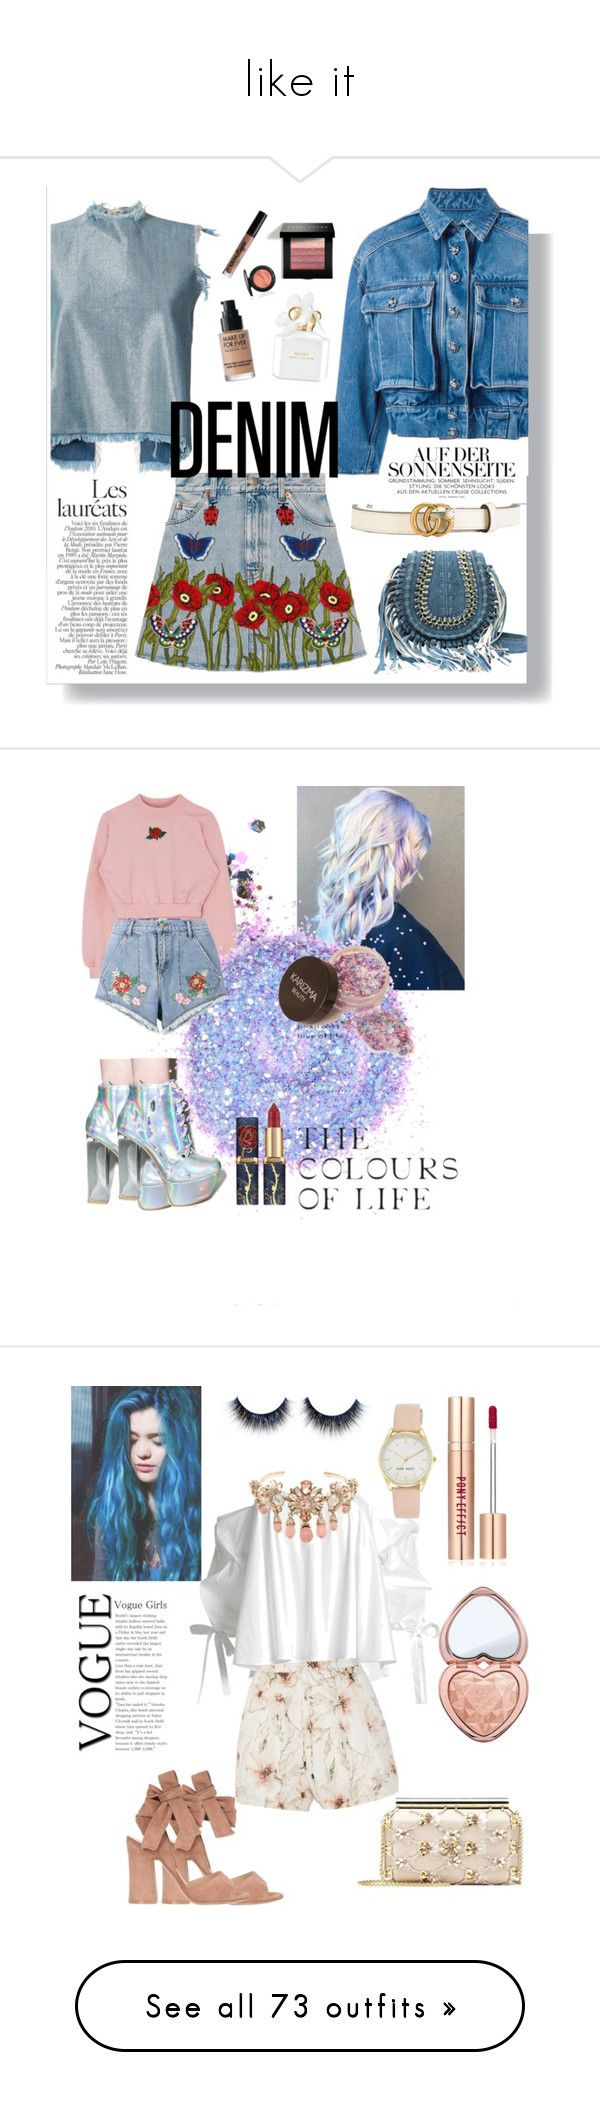 """like it"" by allacyuz ❤ liked on Polyvore featuring accessories, belts, white, white leather belt, balenciaga, white belt, balenciaga belt, leather belt, Marques'Almeida and Dolce&Gabbana"